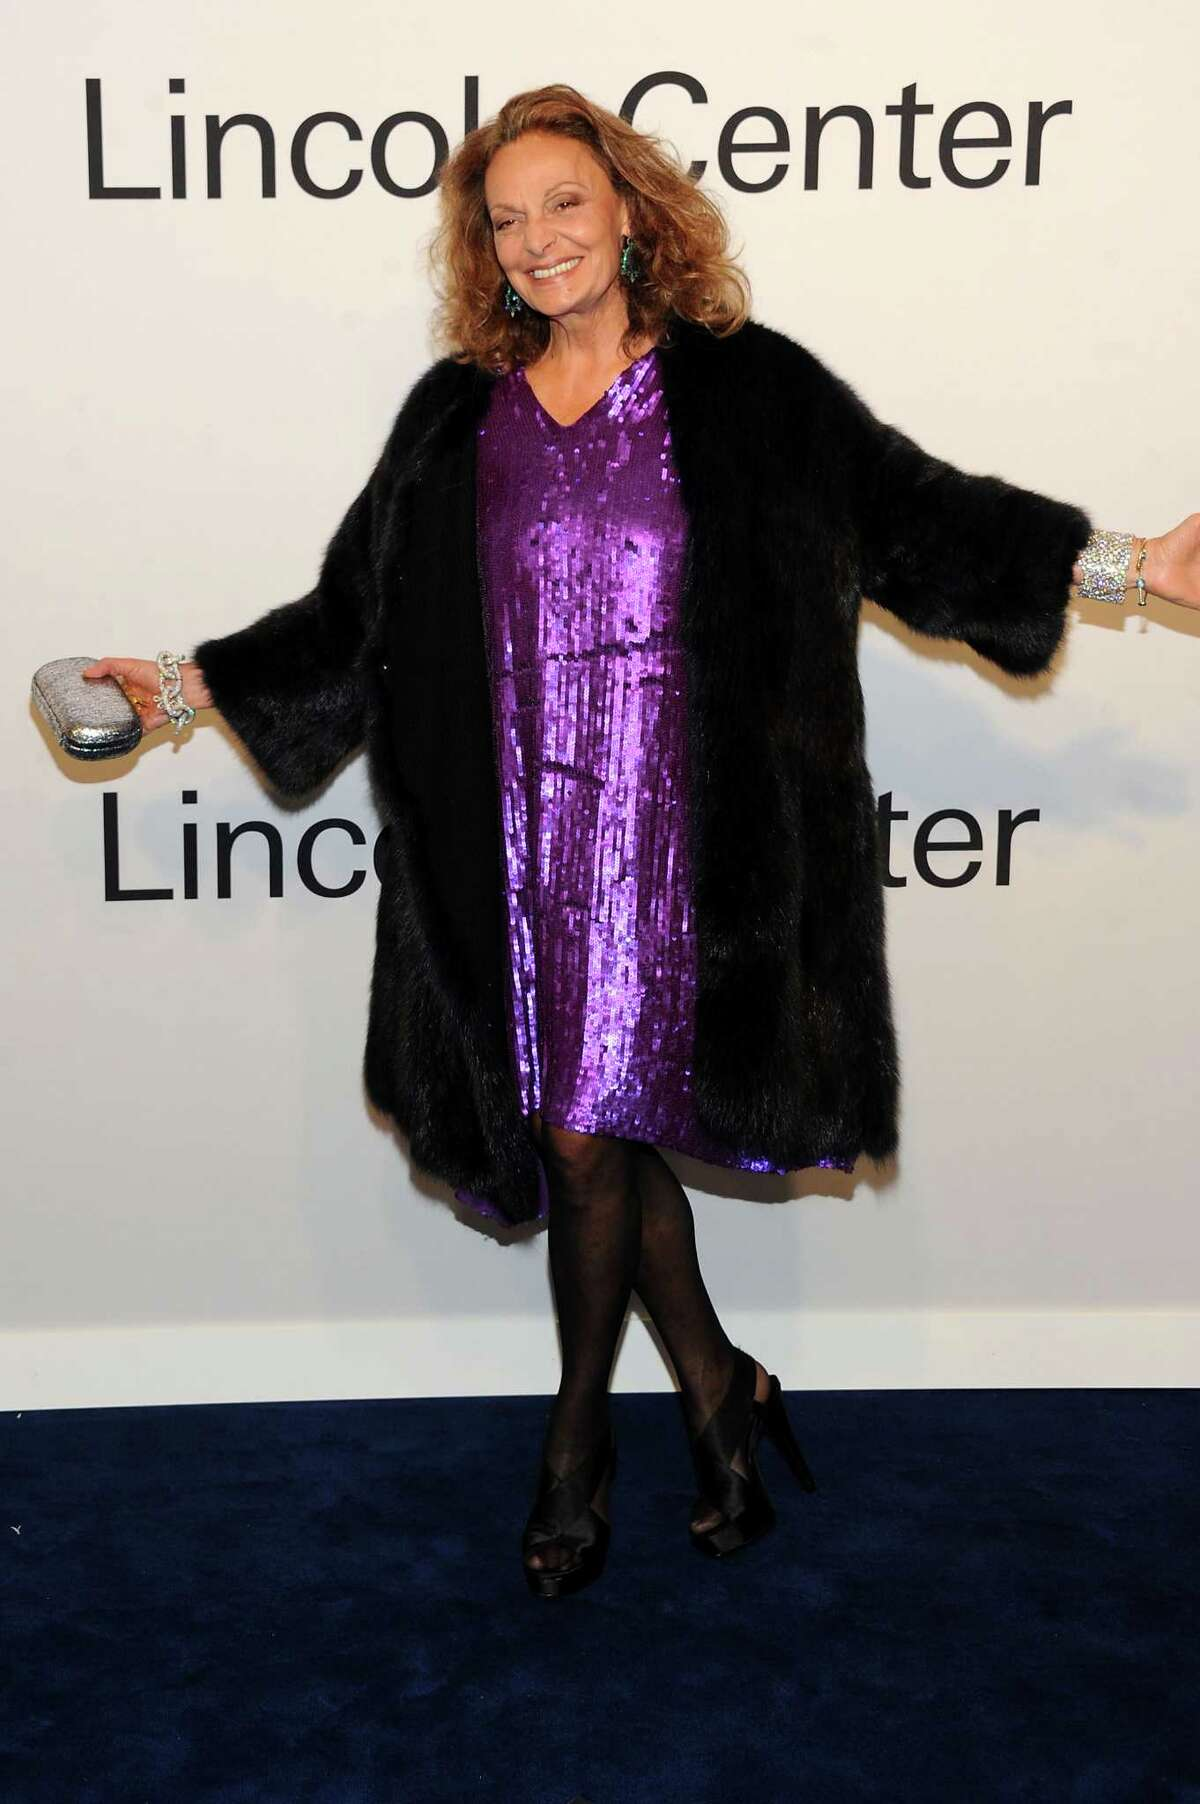 THE LEADER: Diane Von Furstenberg shows off one of her own creation. Black fur is the perfect contrast.